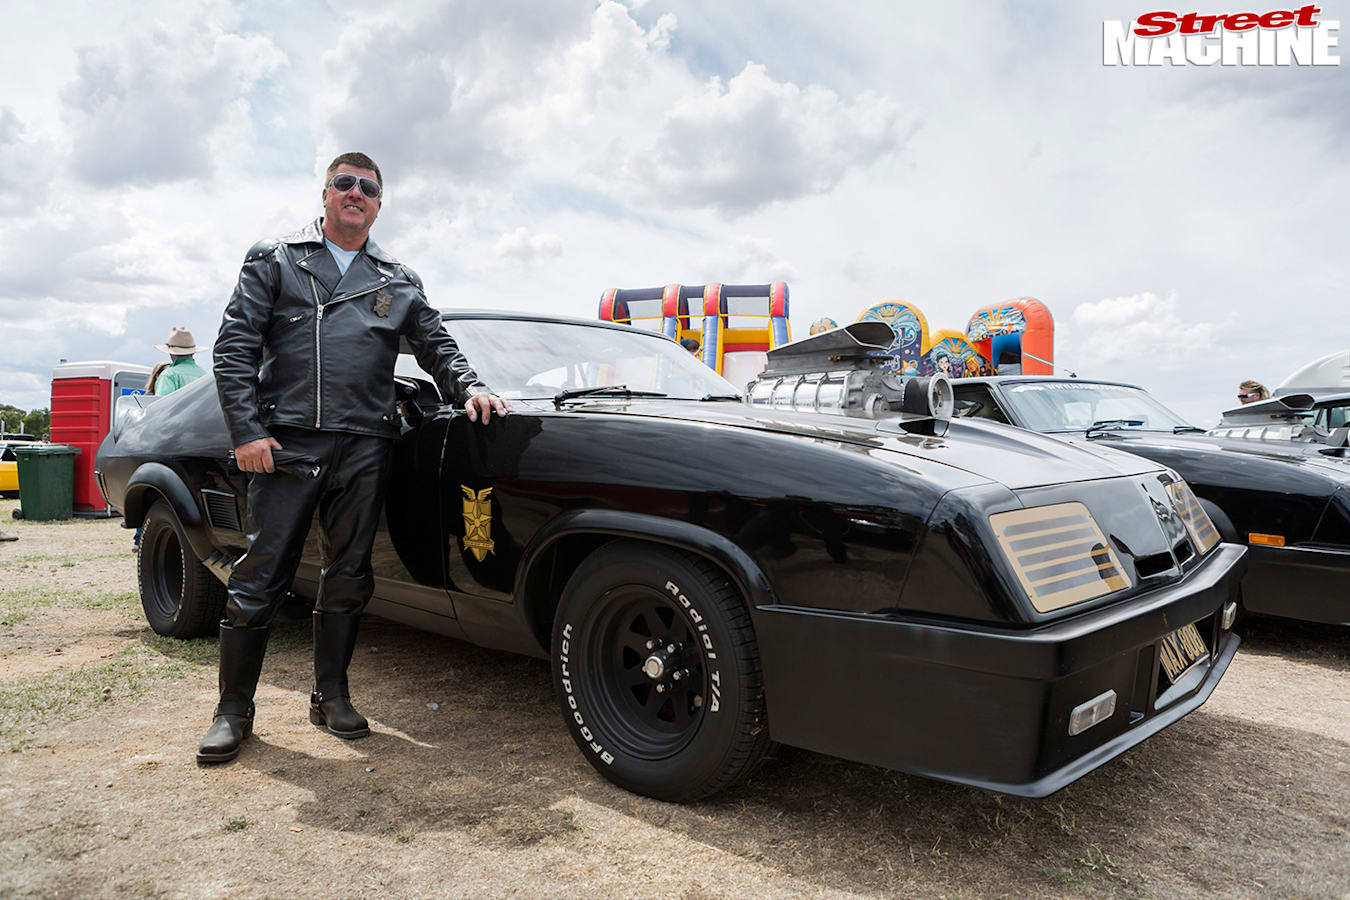 Mad -max -characer -6